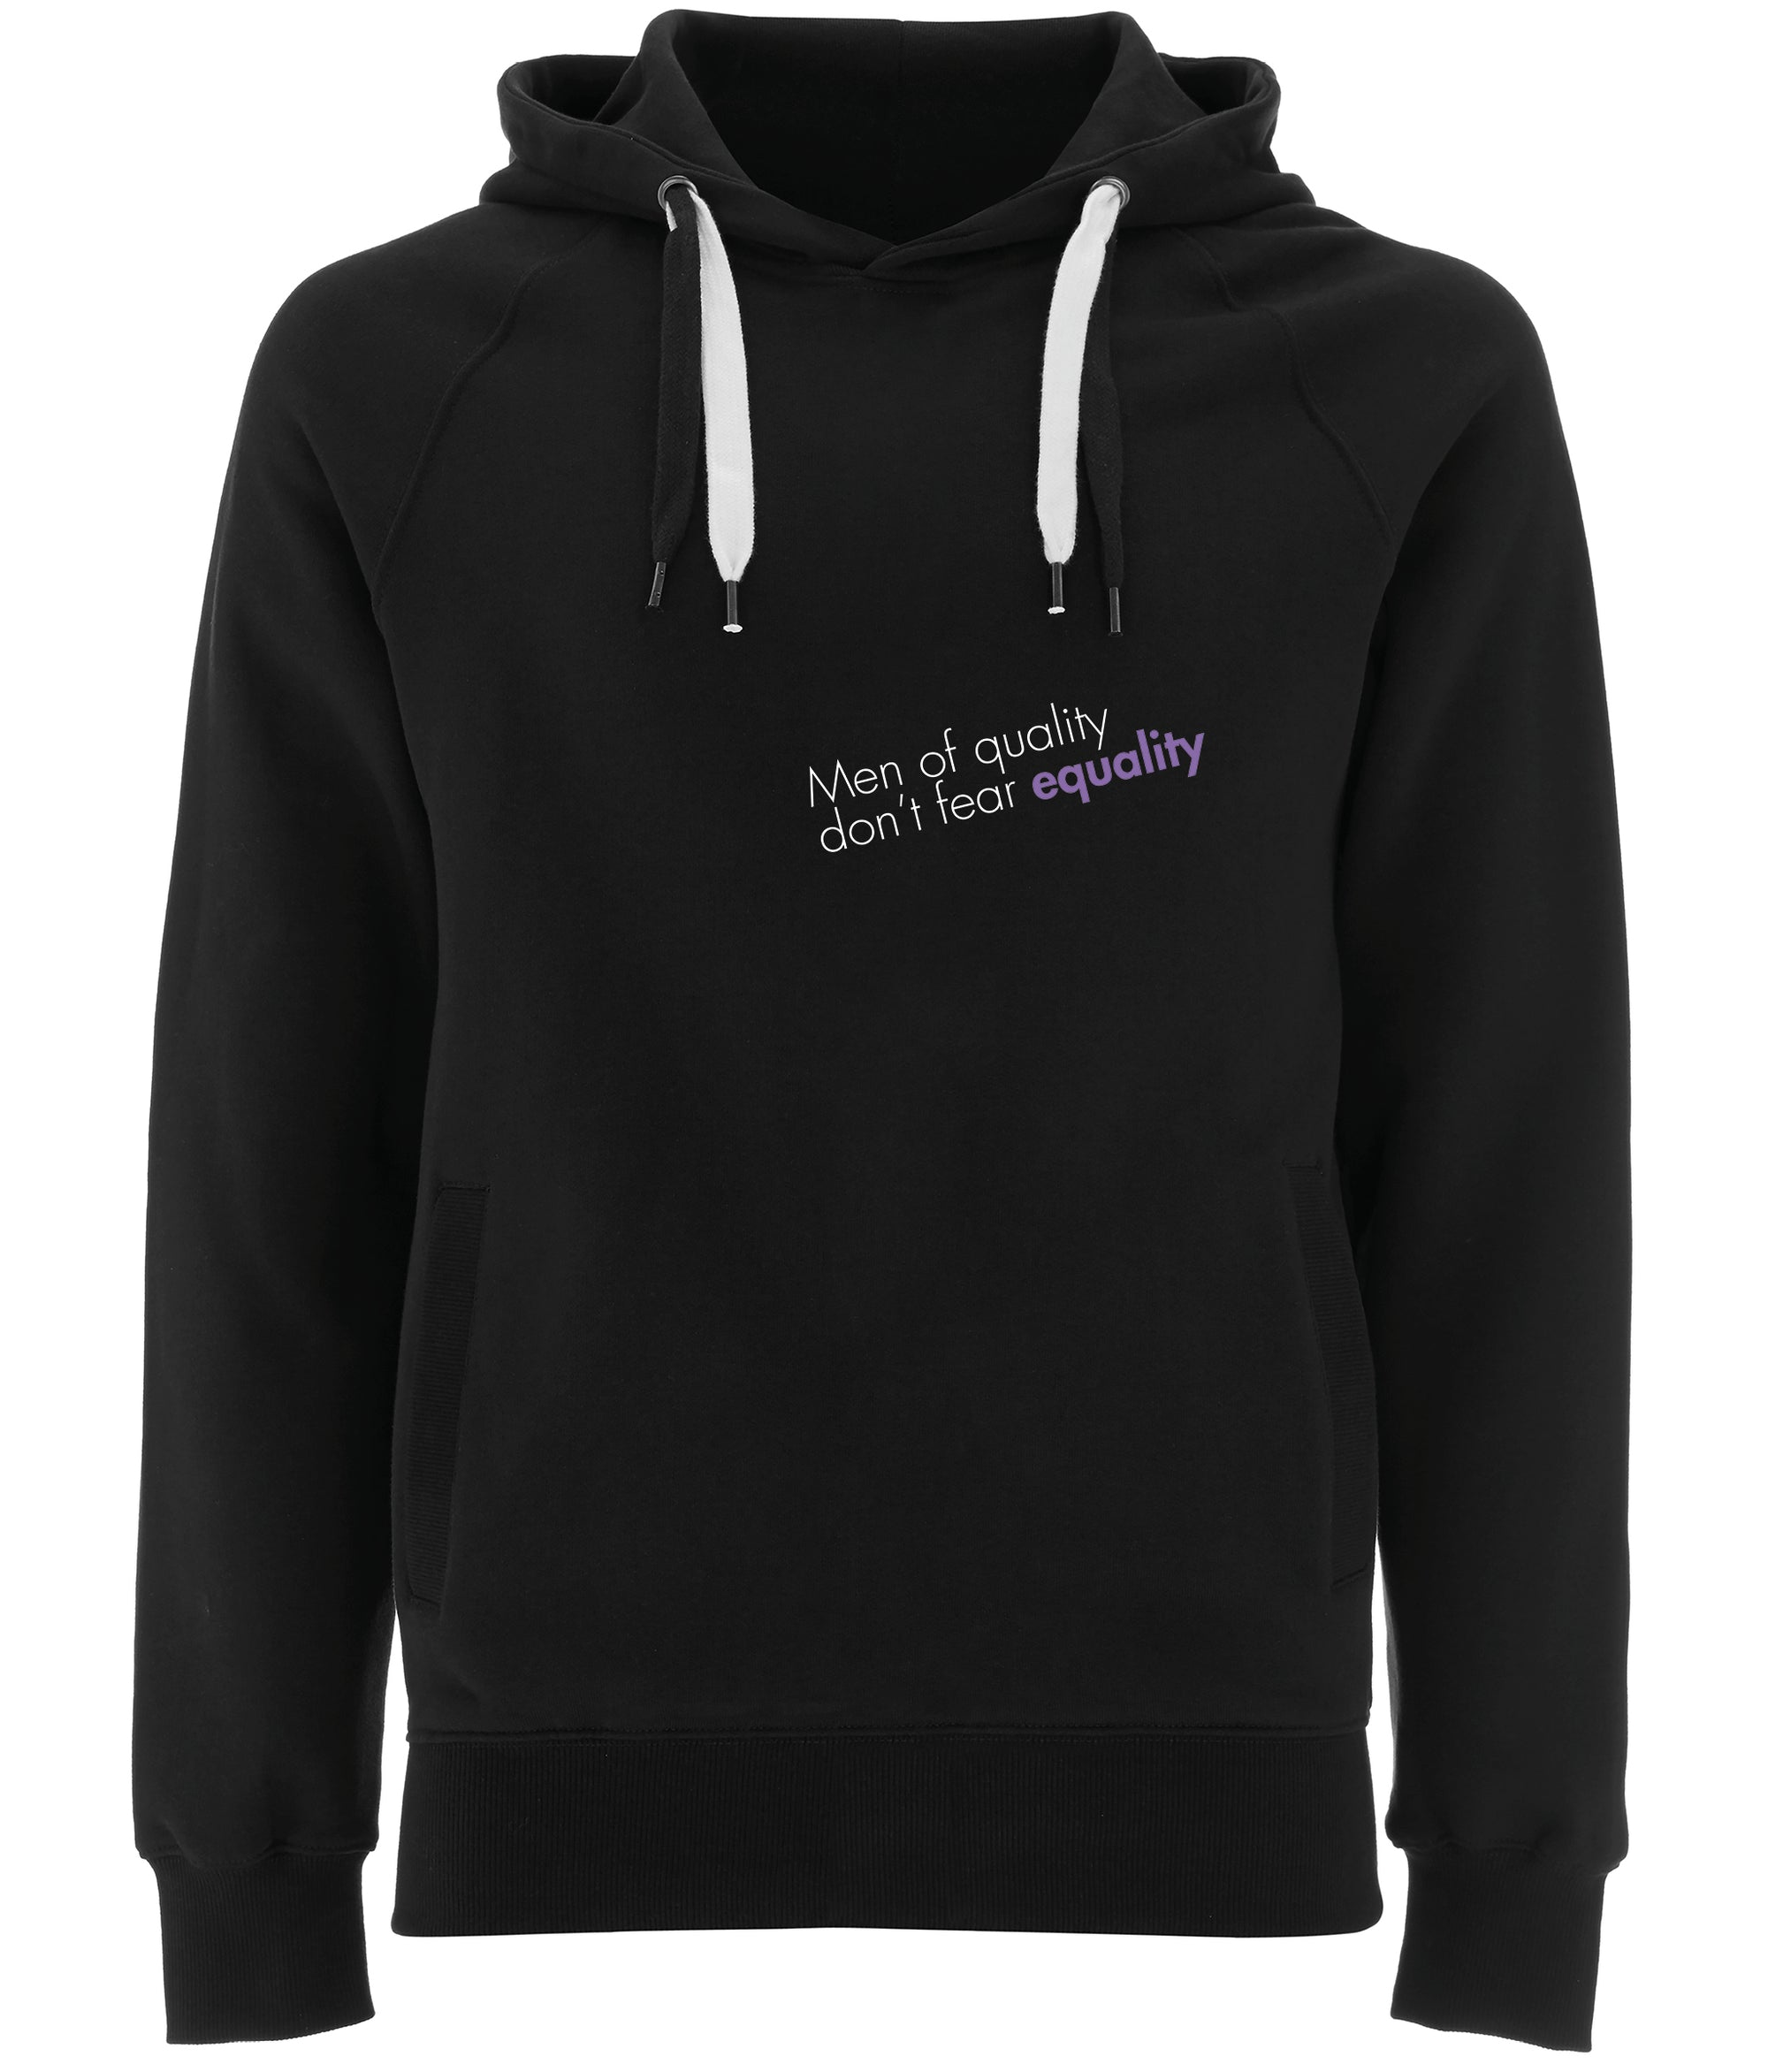 Men Of Quality Don't Fear Equality Organic Combed Cotton Hoodie Black